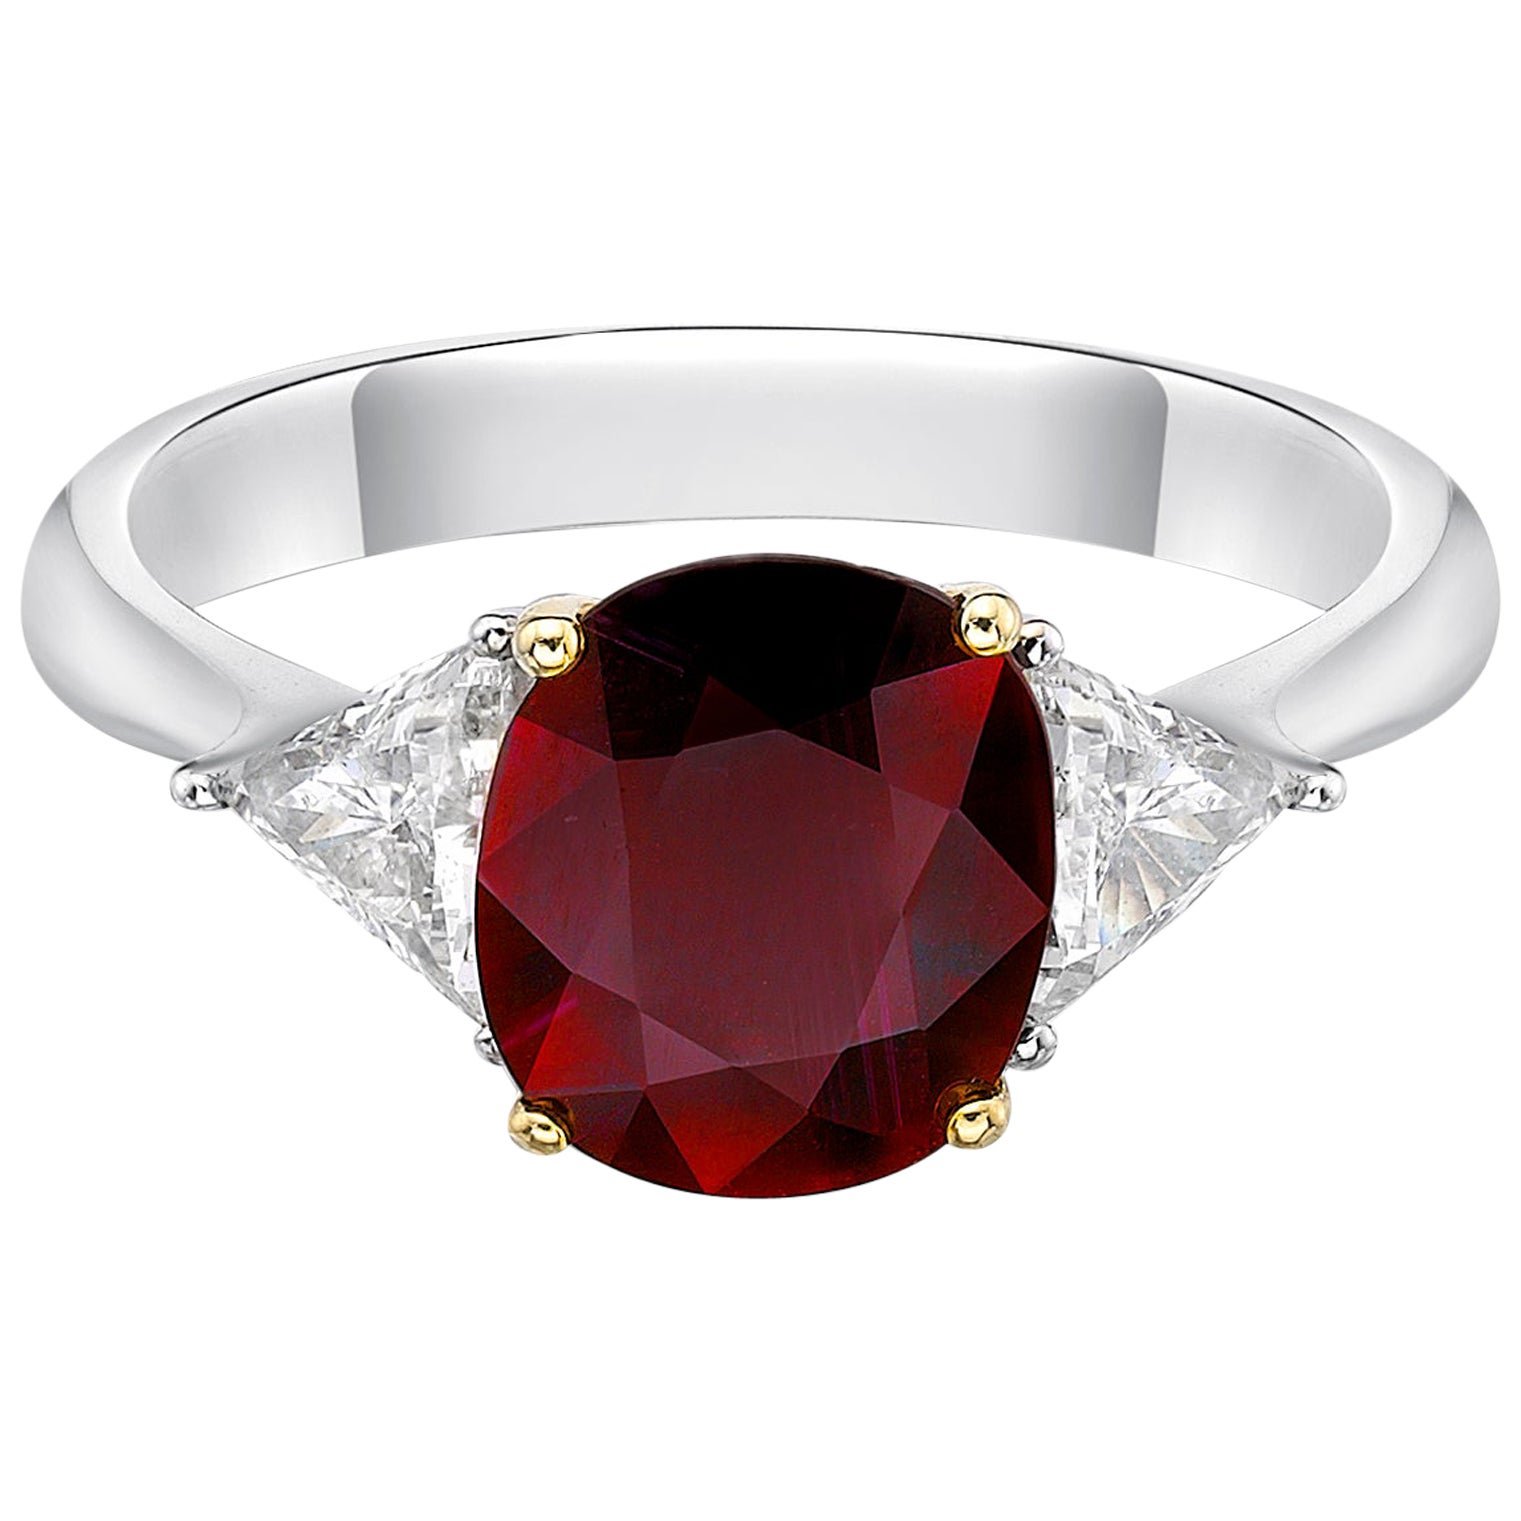 2.08 Carat Vivid Red Ruby GIA Certified Unheated Diamond Ring Cushion Cut